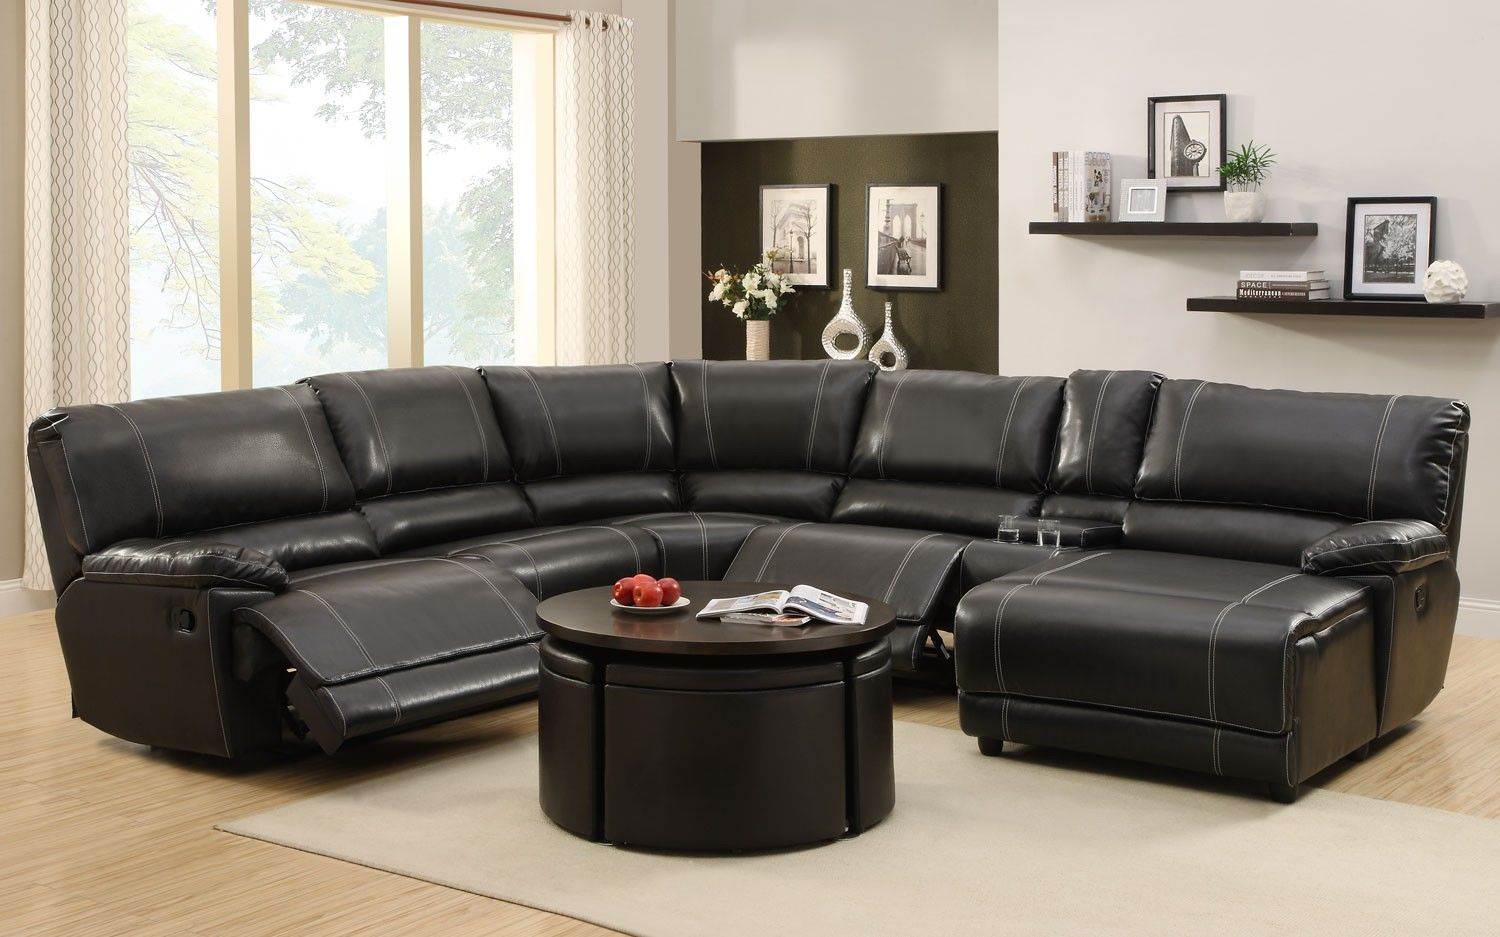 beautiful modern recliner sofa model-Wonderful Modern Recliner sofa Picture